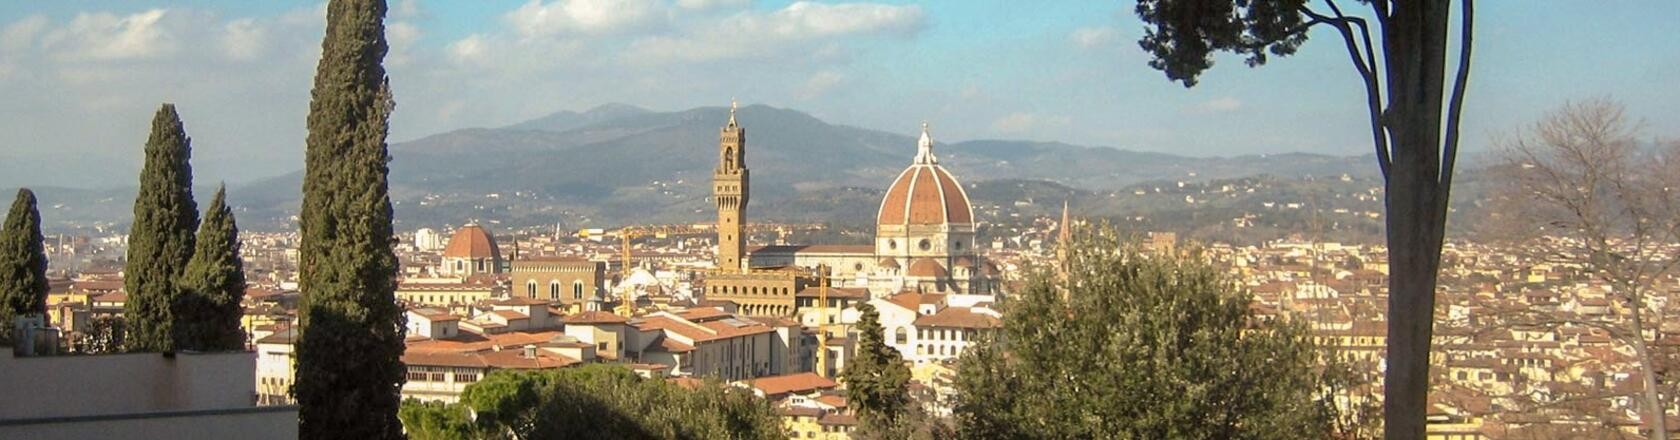 Pistoia in Italy - Rent a holiday home  with DanCenter